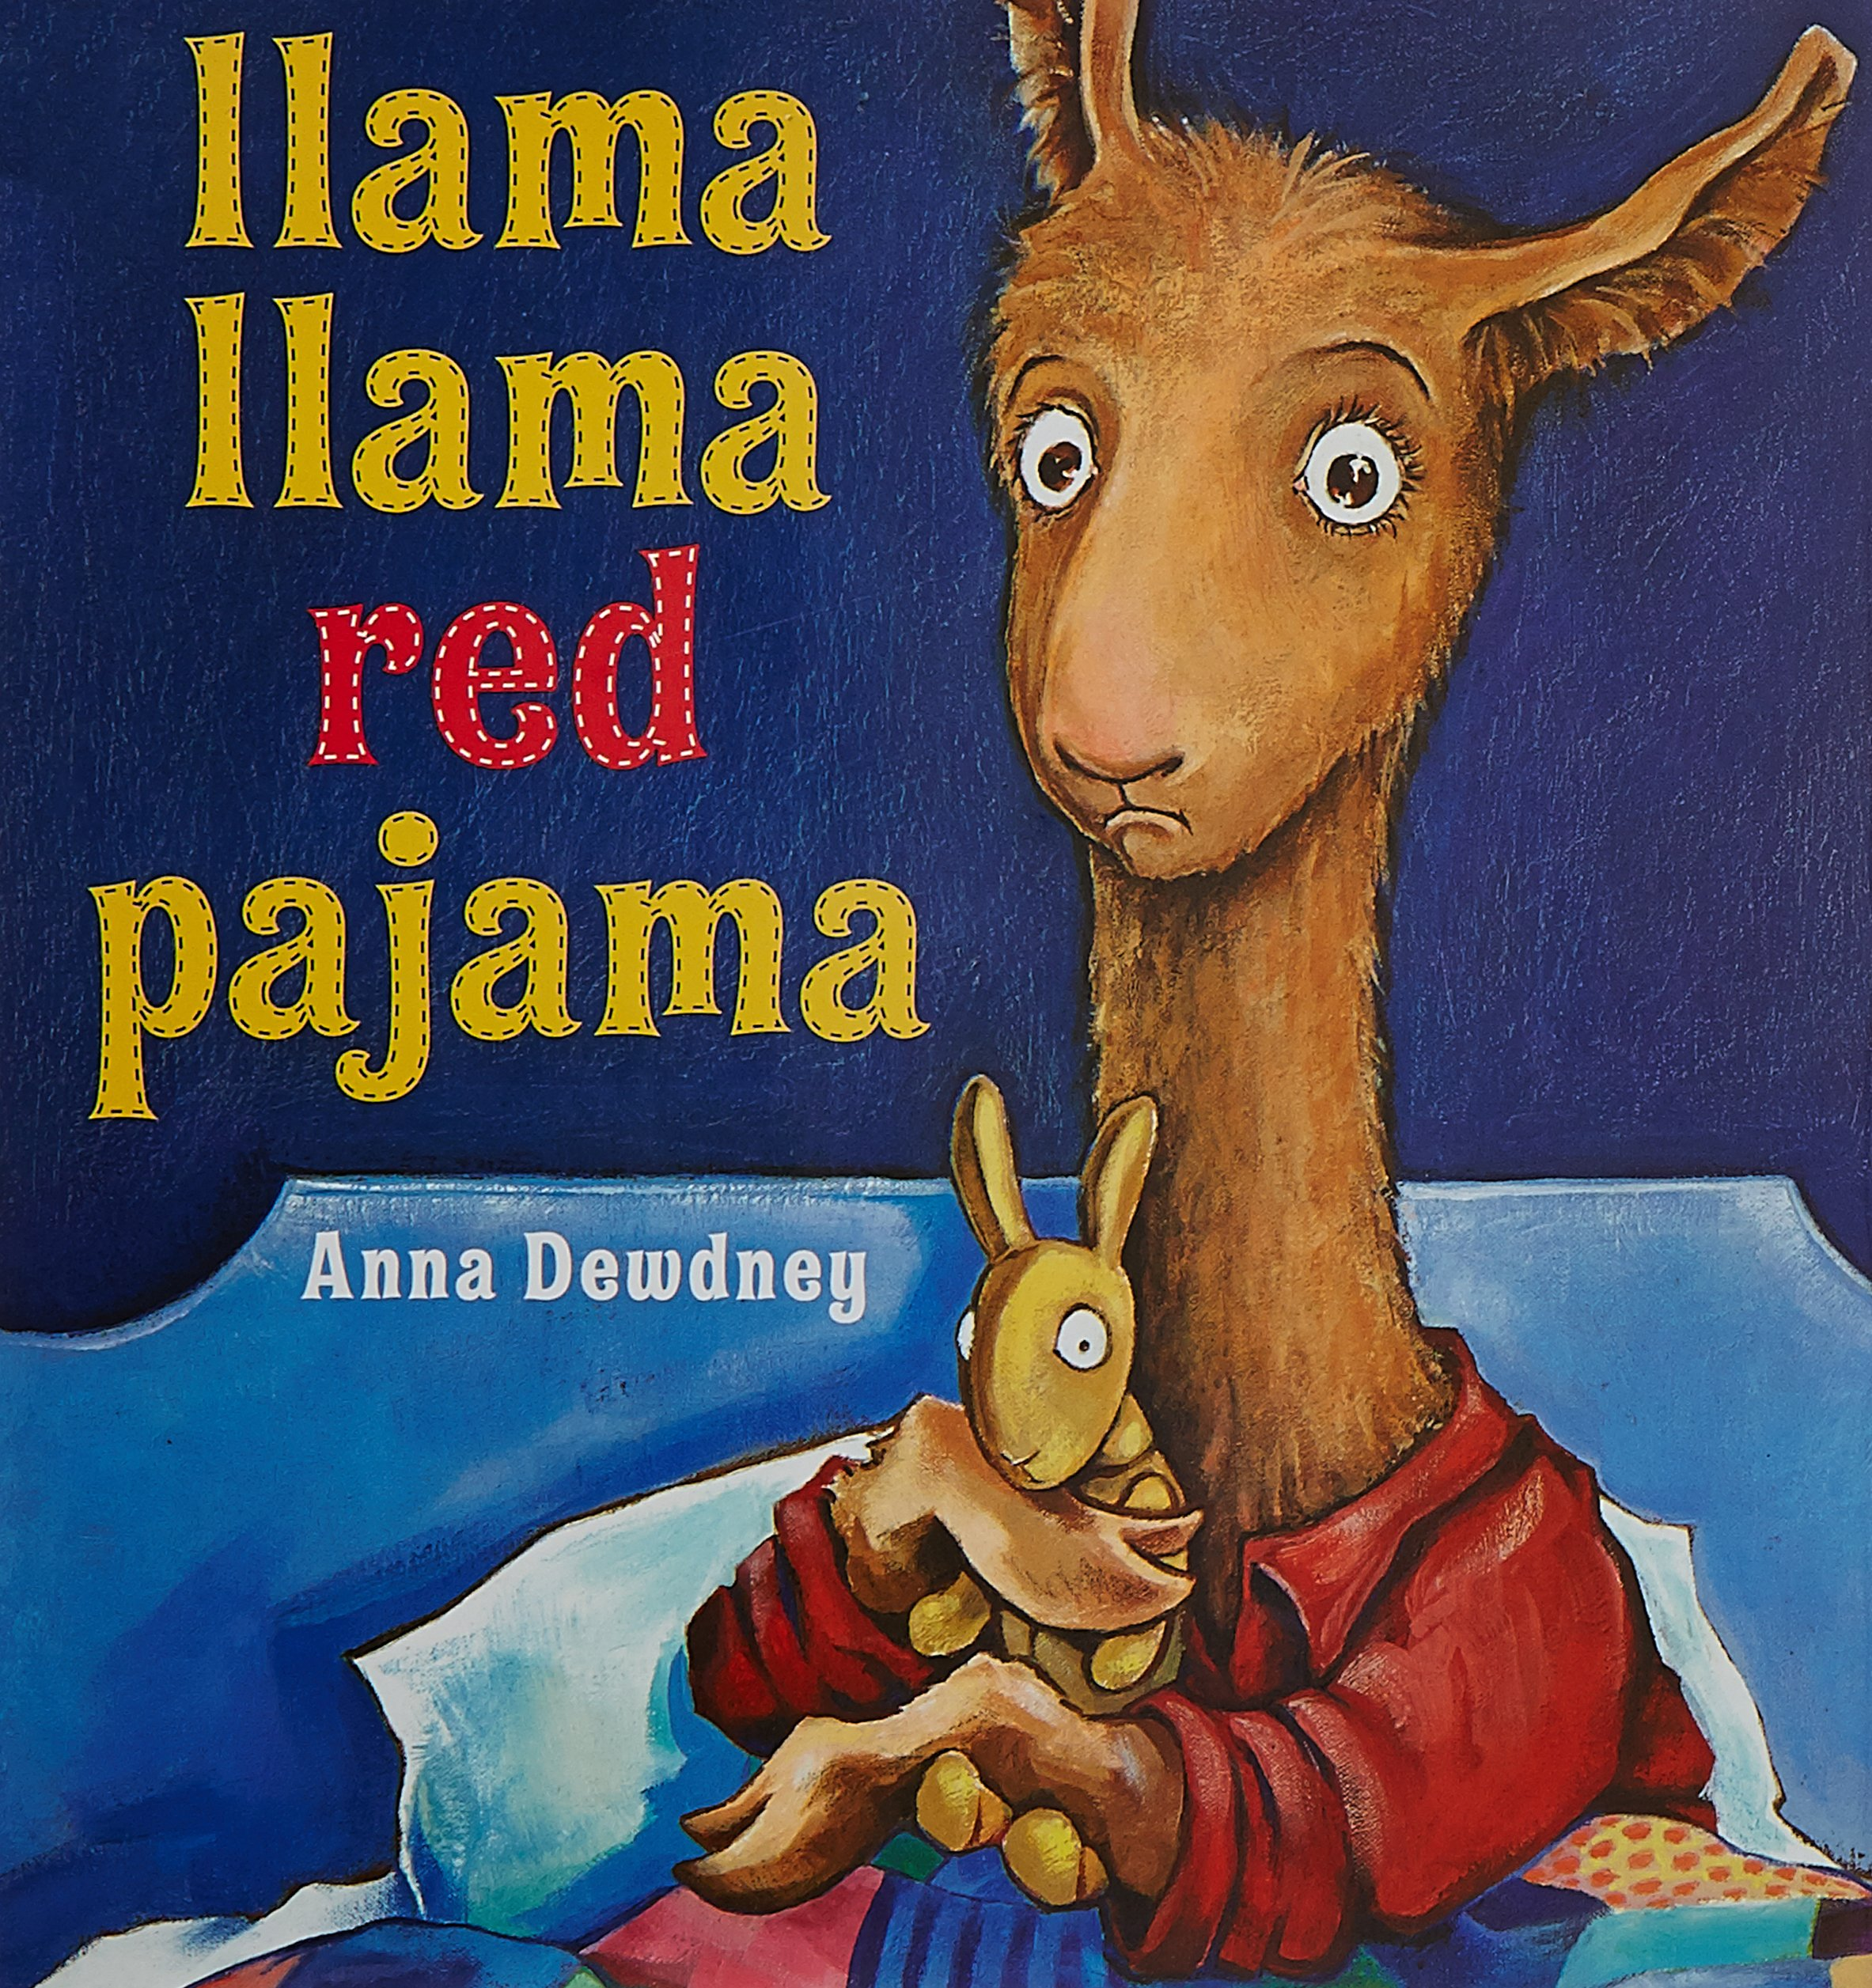 llama llama red pajama amazon co uk anna dewdney 9780670059836